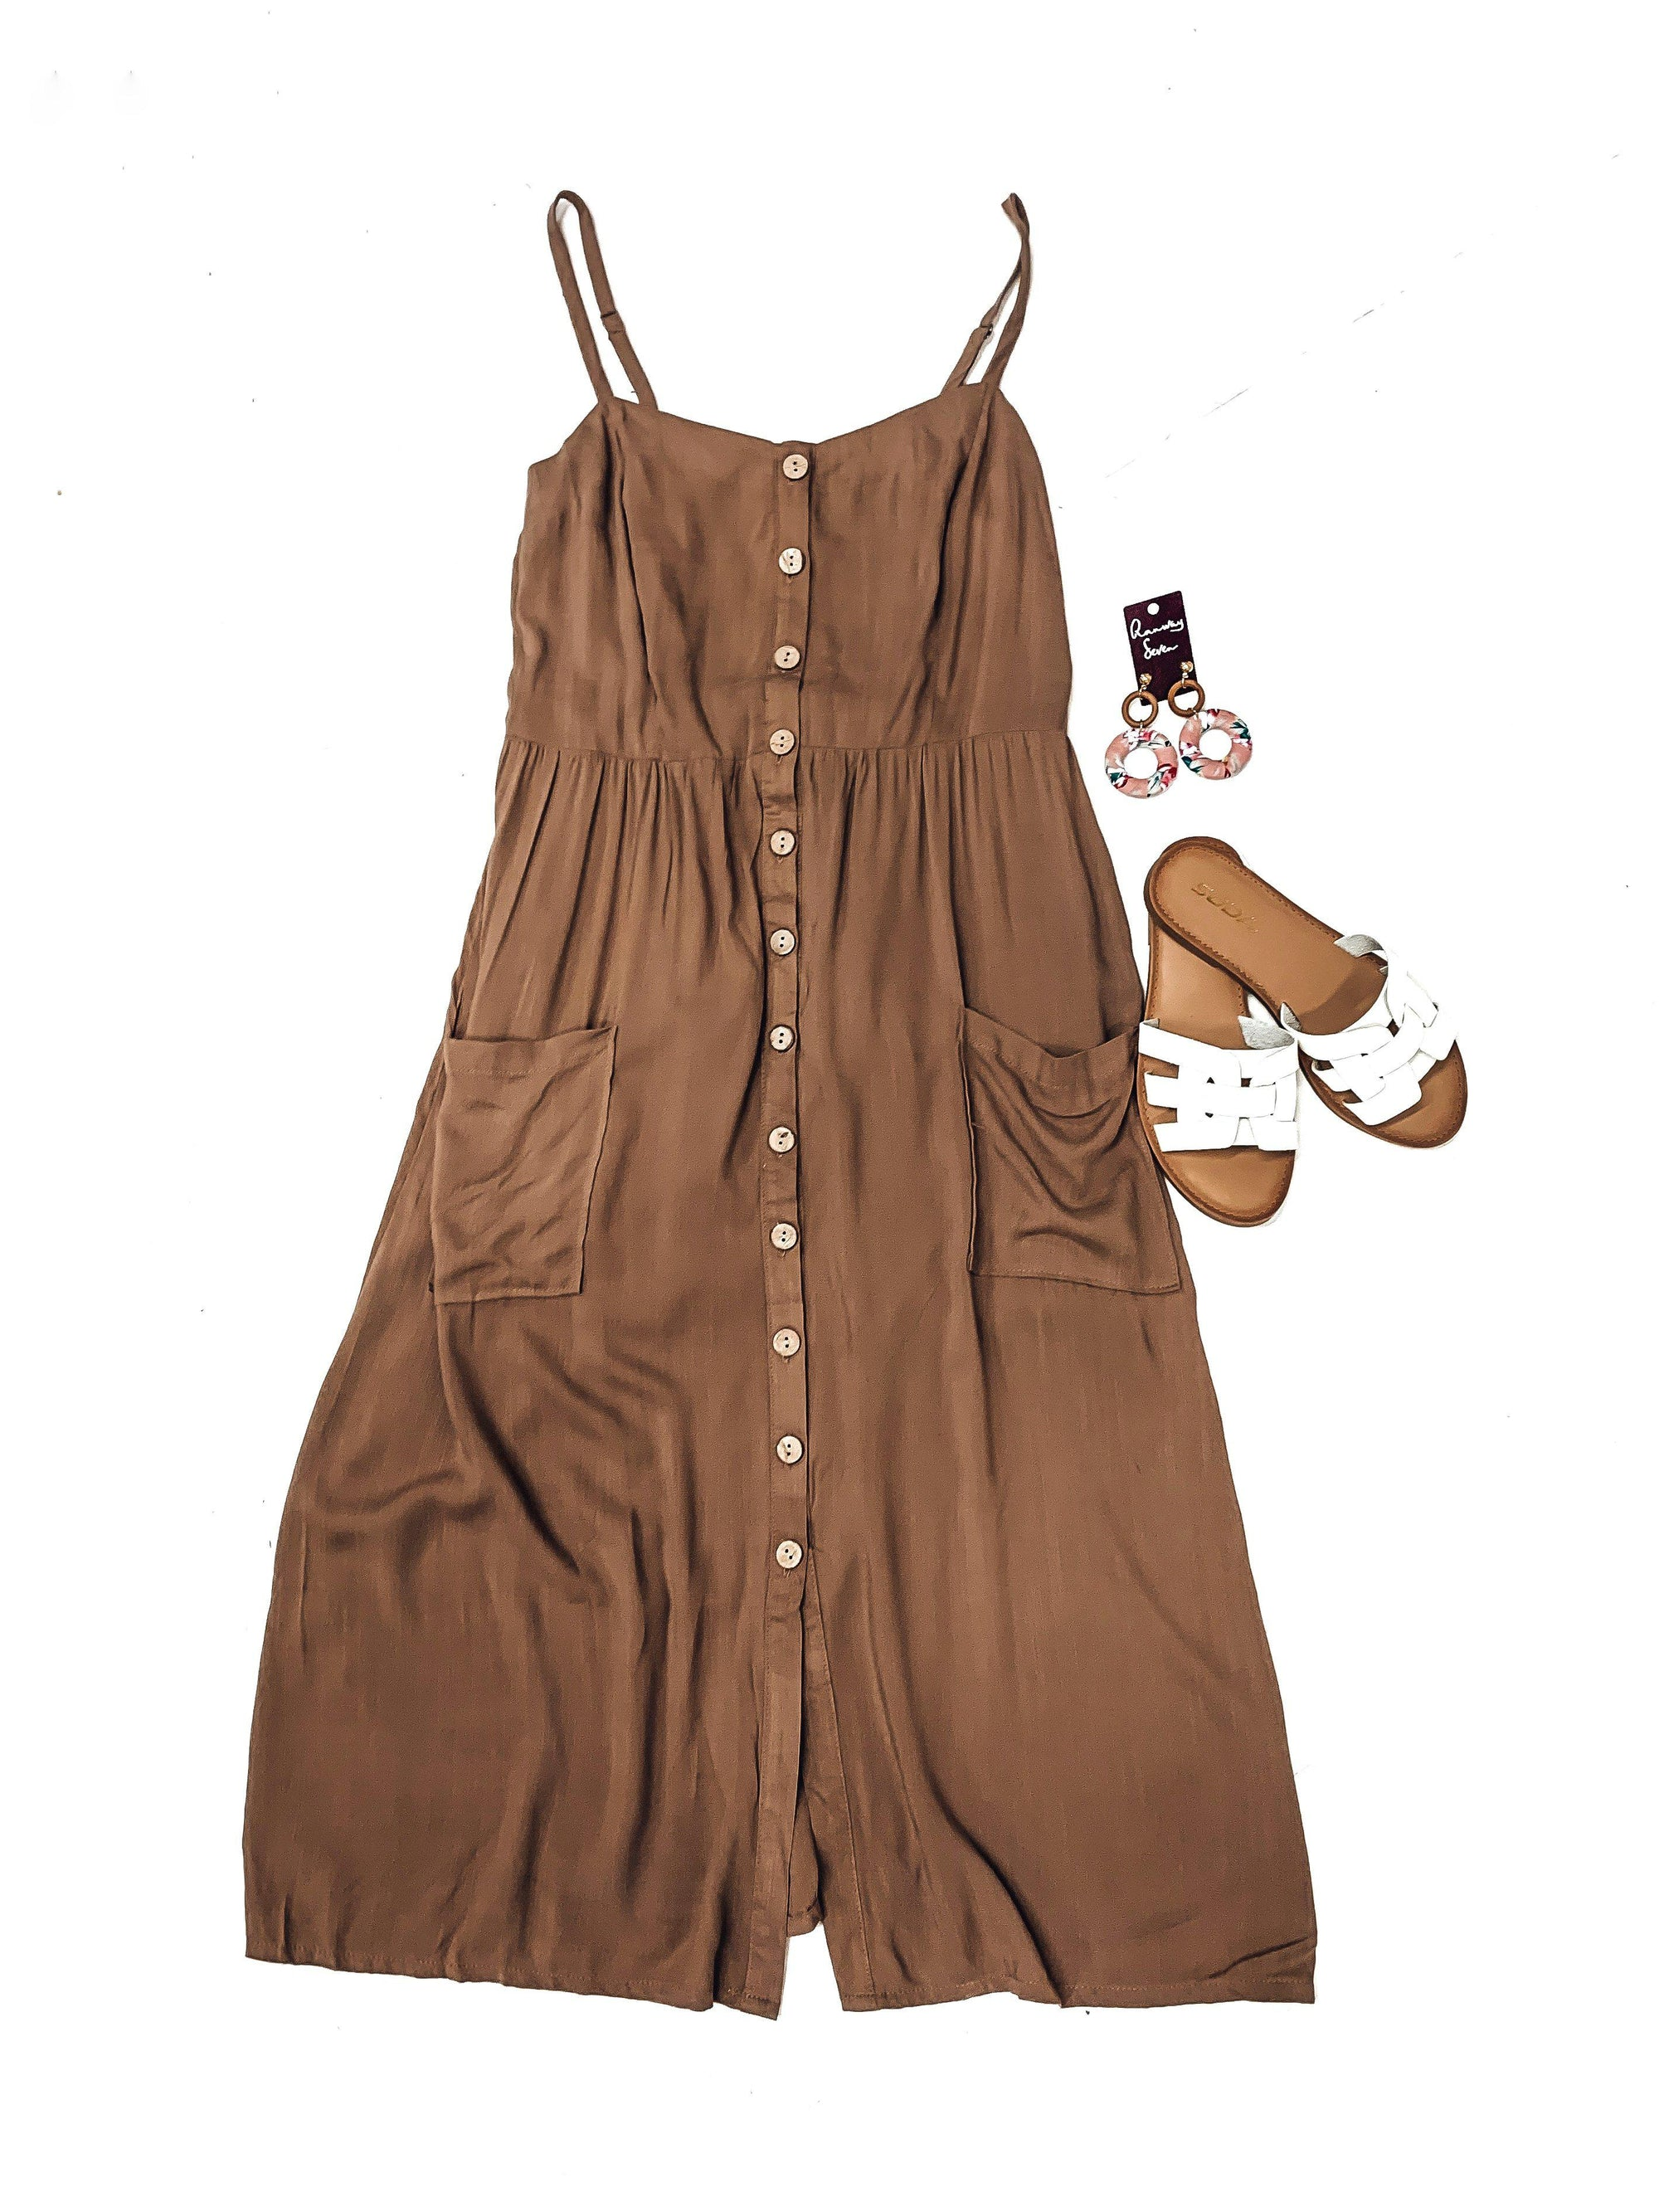 Coffee Date Dress-Women's DRESS-New Arrivals-Runway Seven